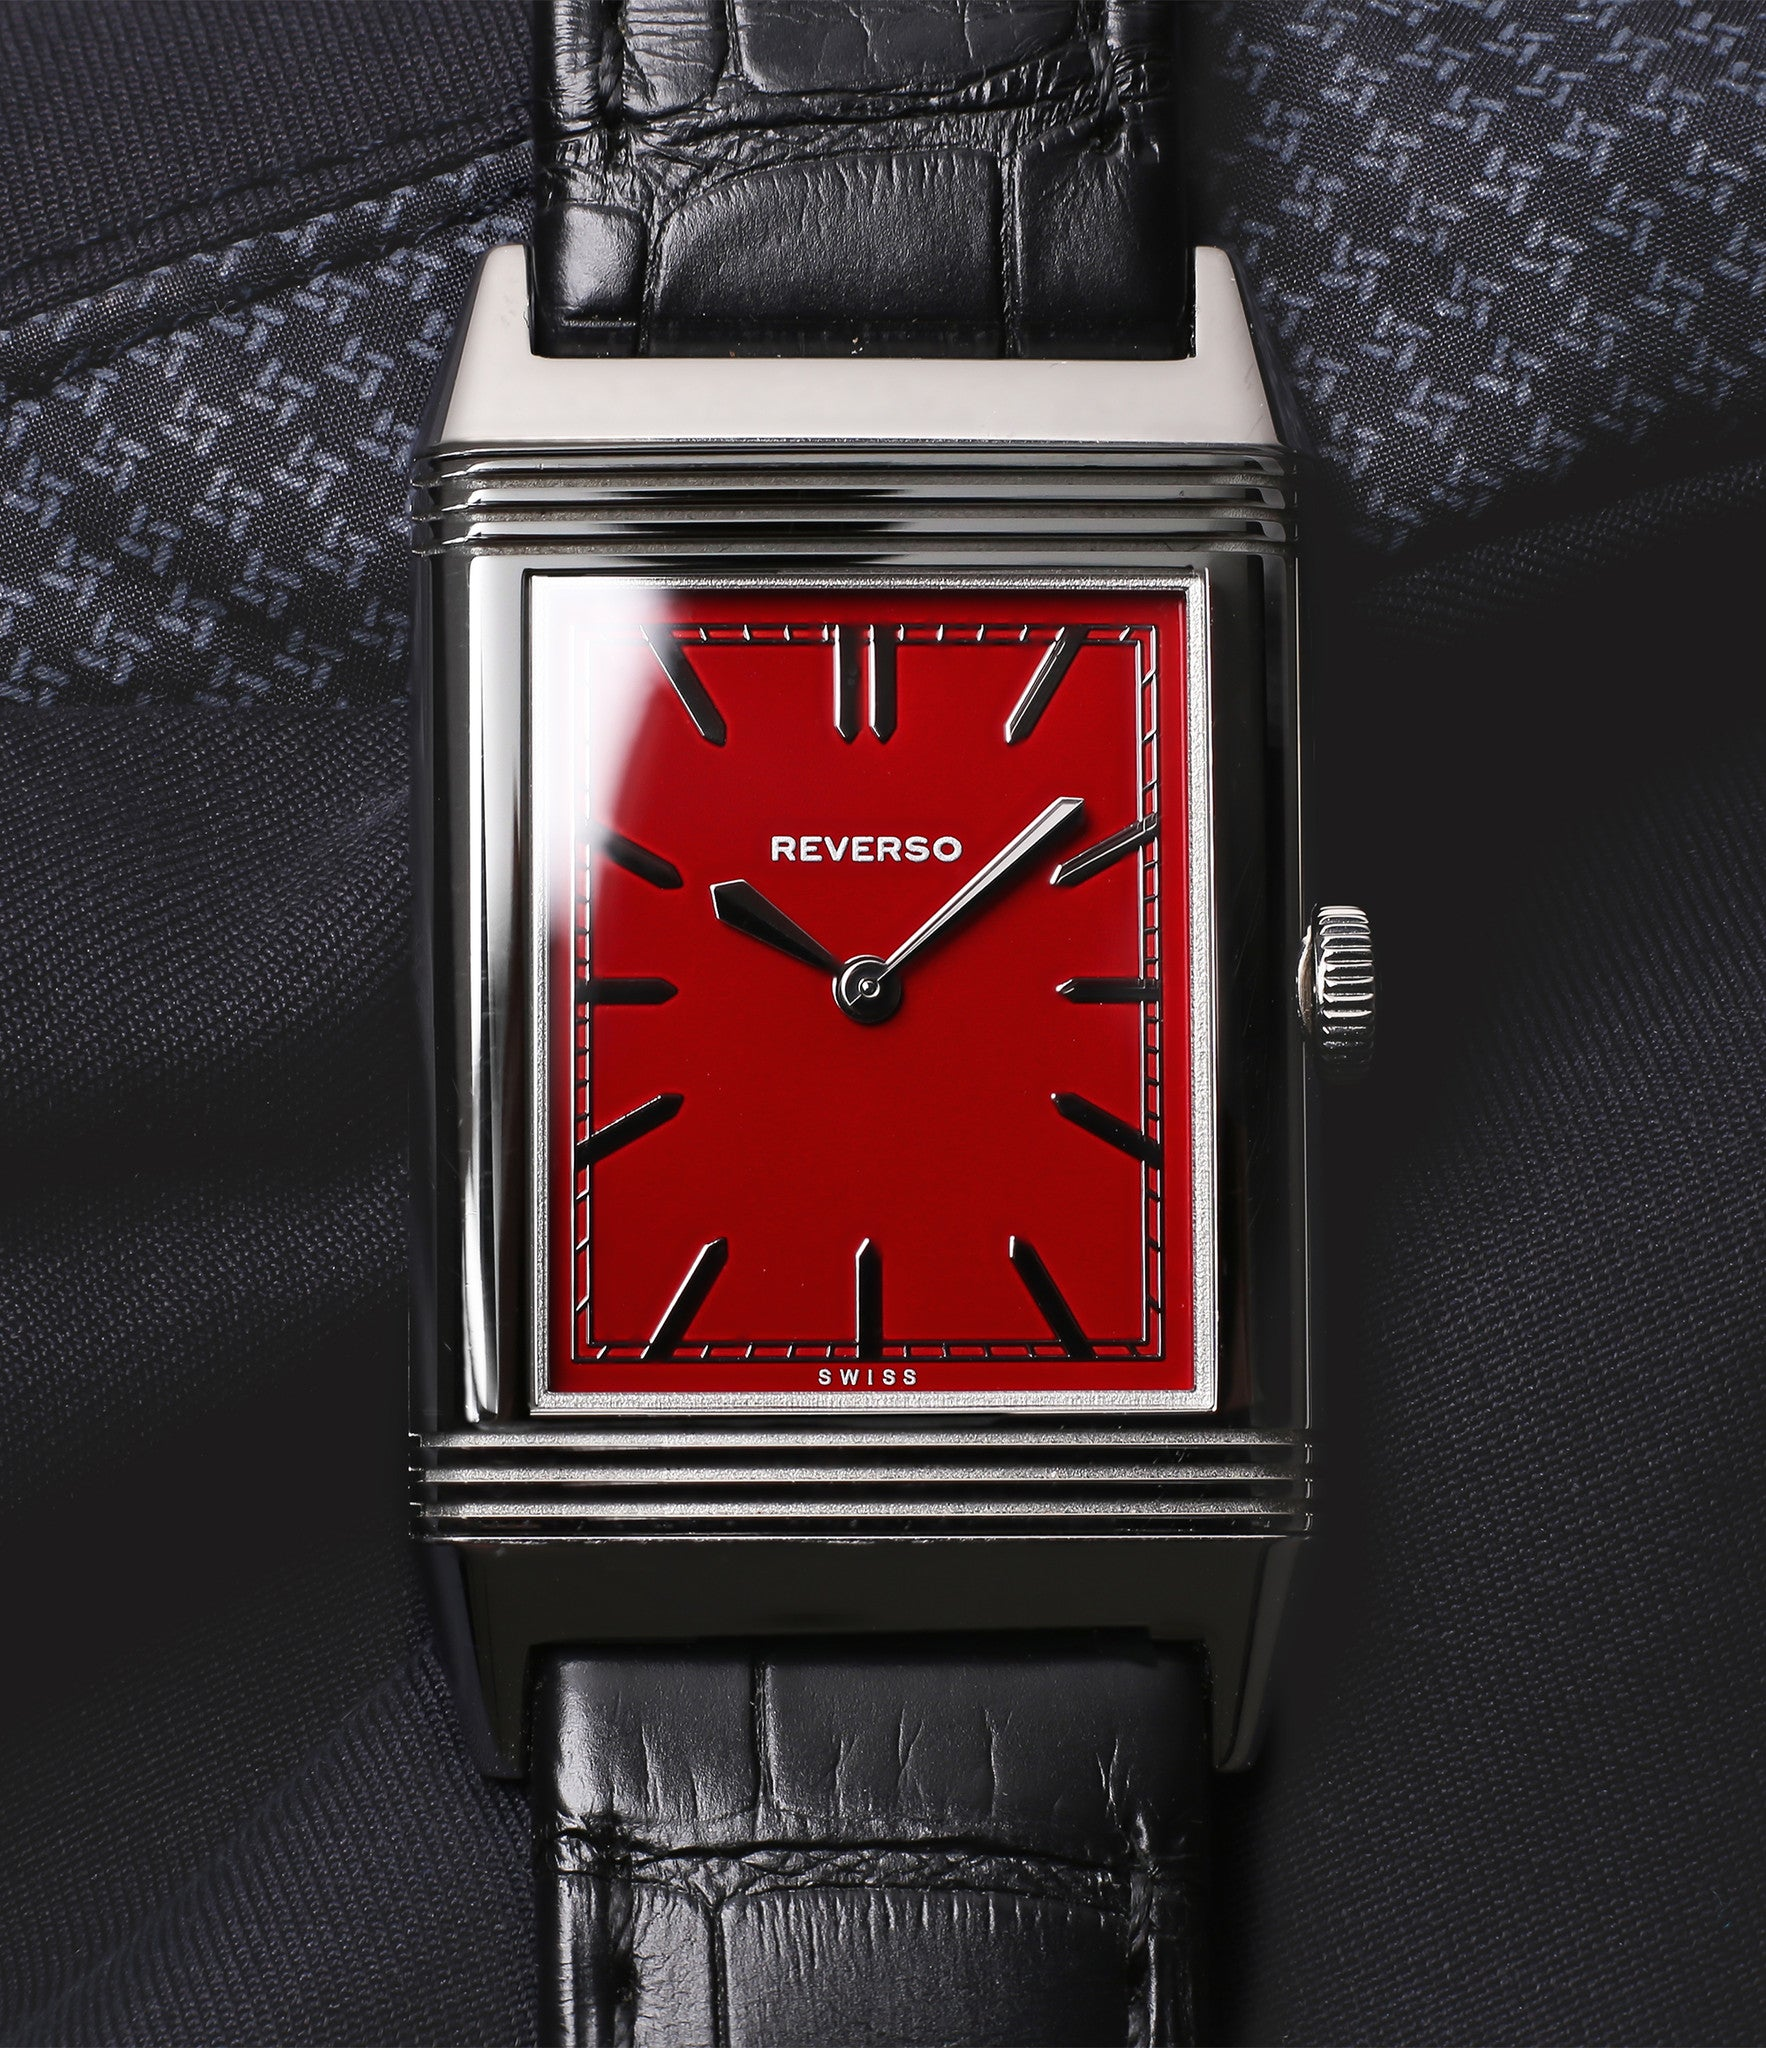 Jaeger-LeCoultre Reverso 1931 Rouge red lacquer dial dress watch online at a Collected Man London